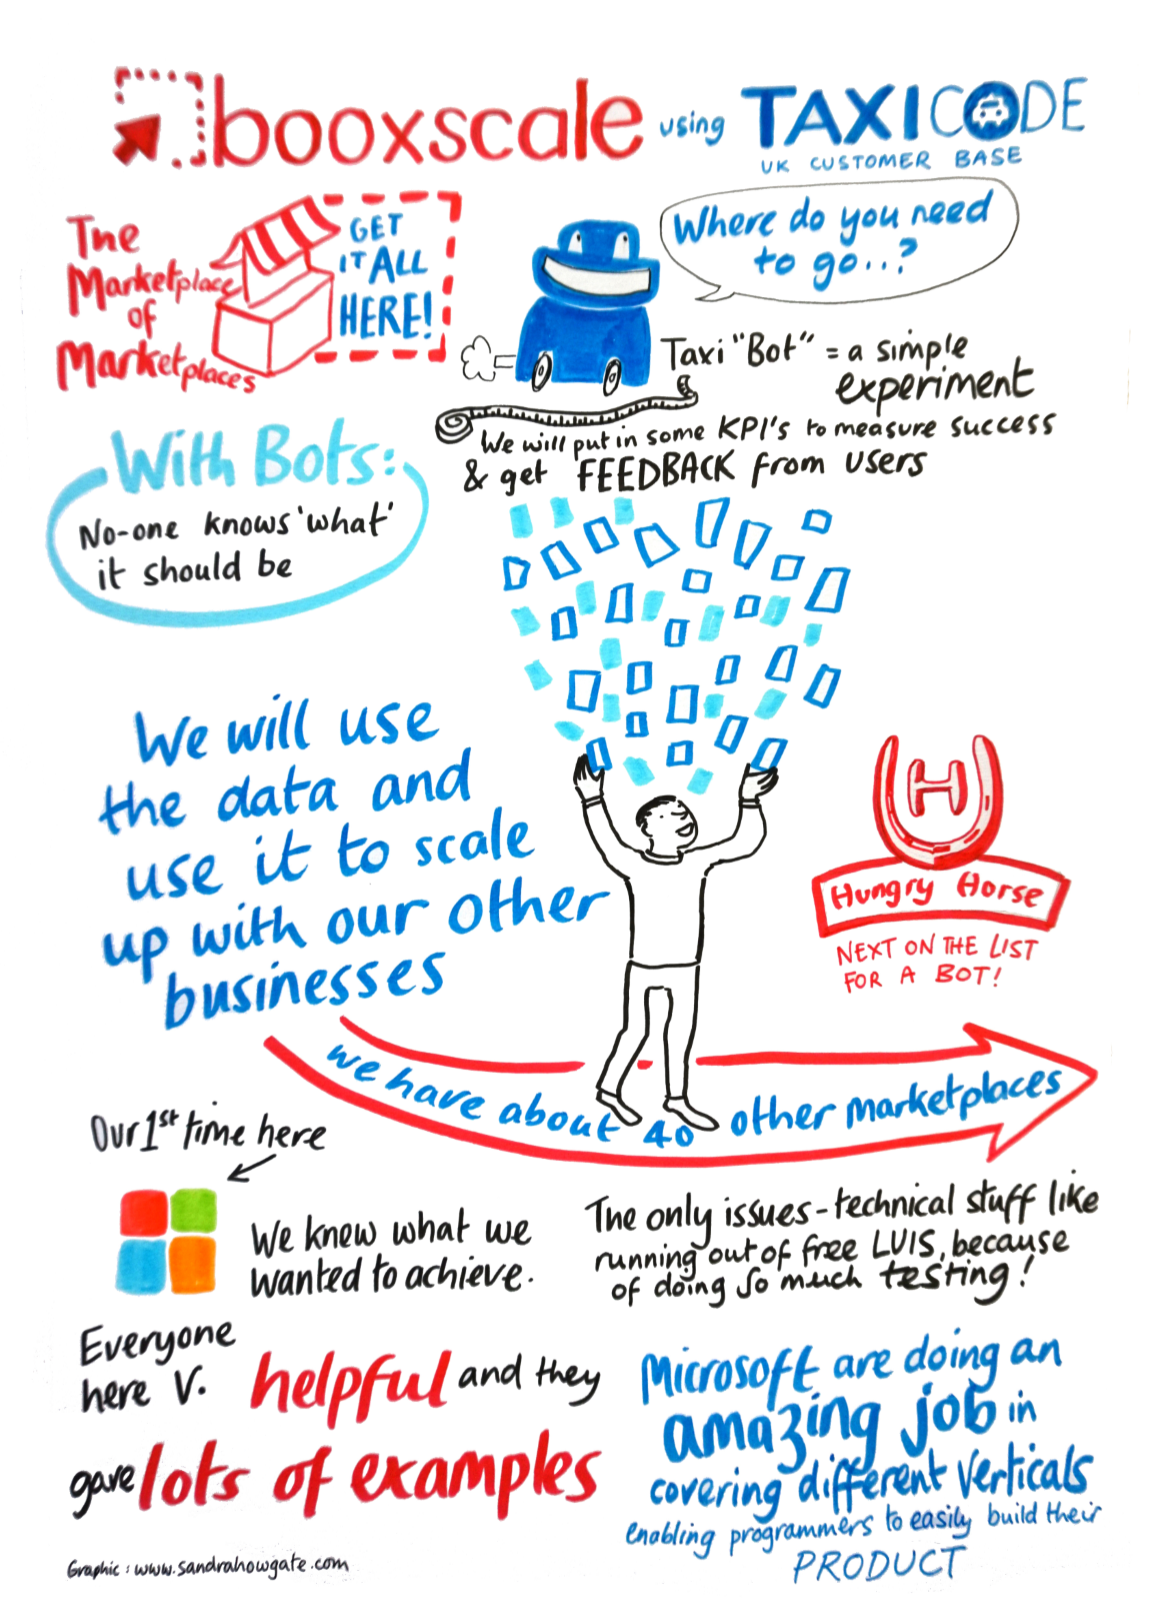 Booxscale sketch notes